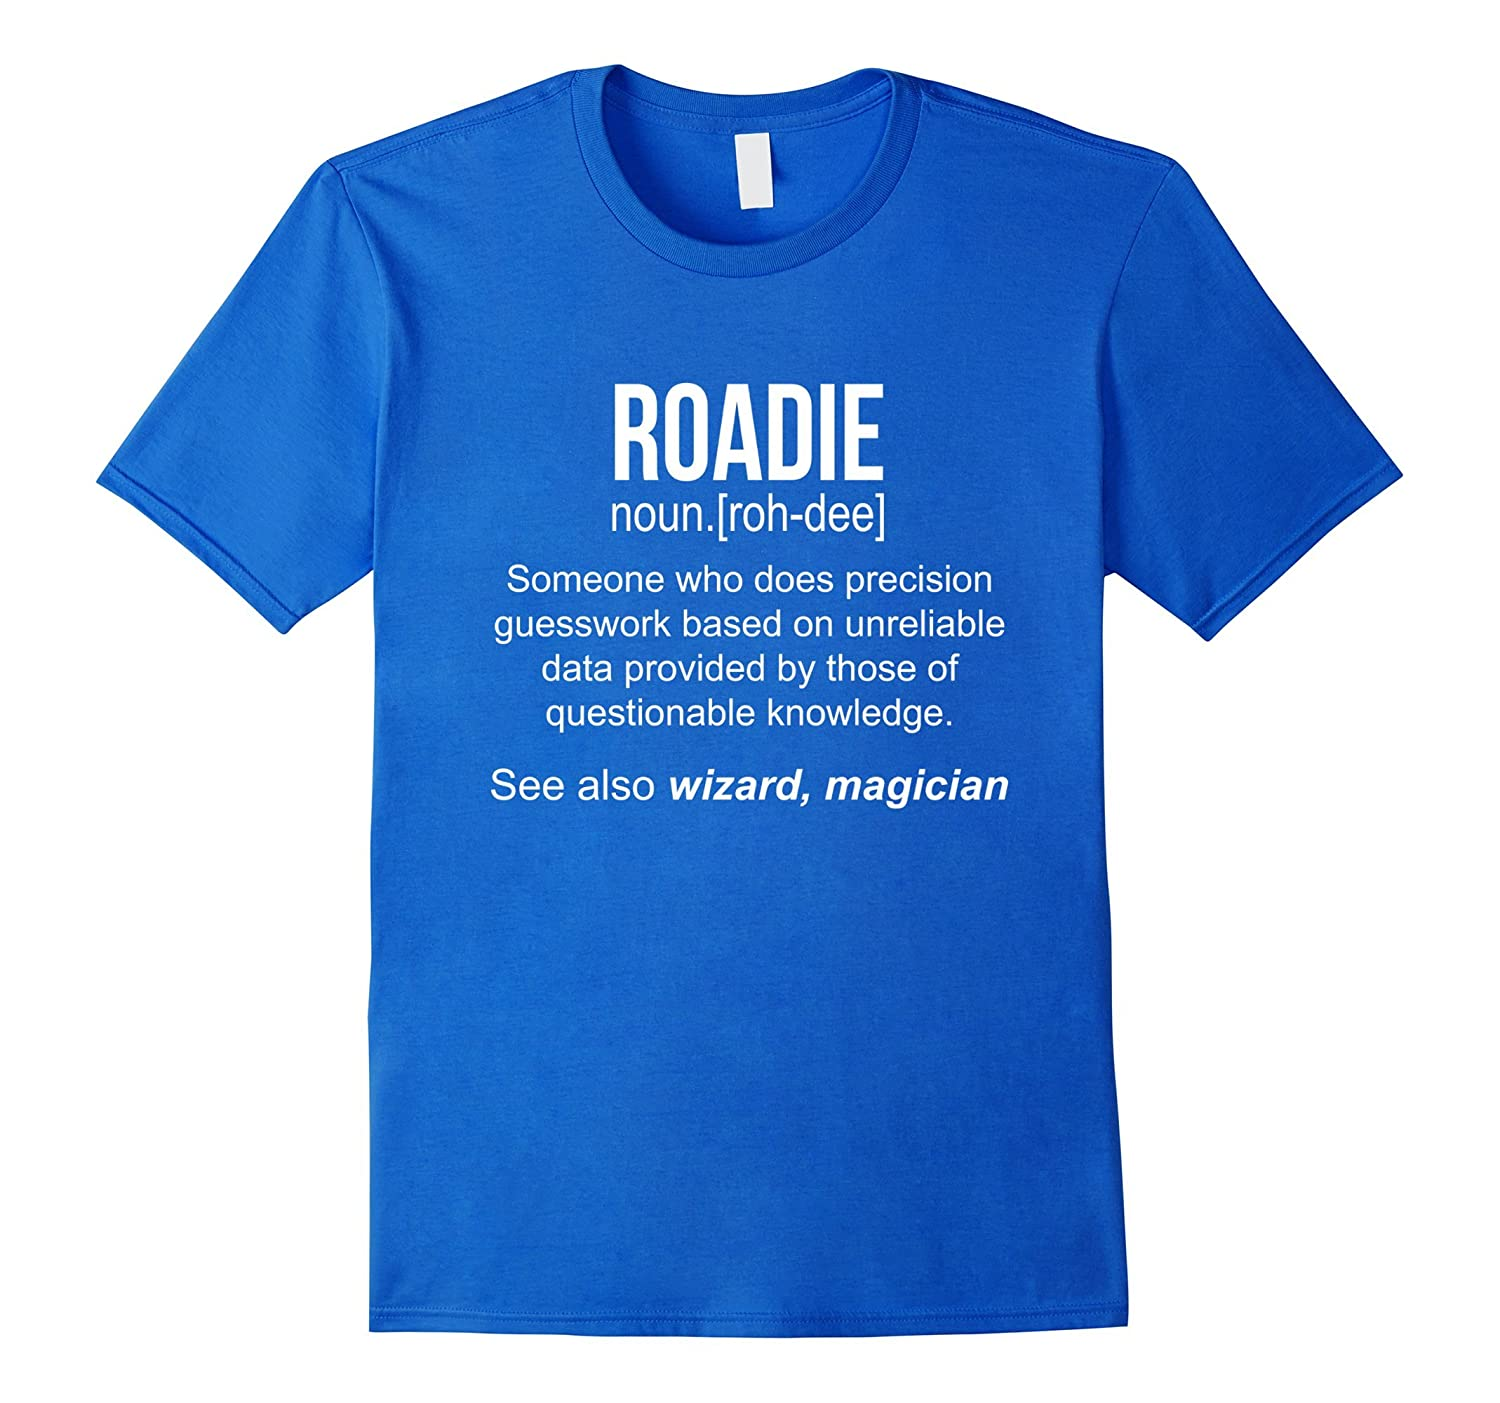 Funny Roadie Meaning Shirt – Roadie Noun Definition-CL